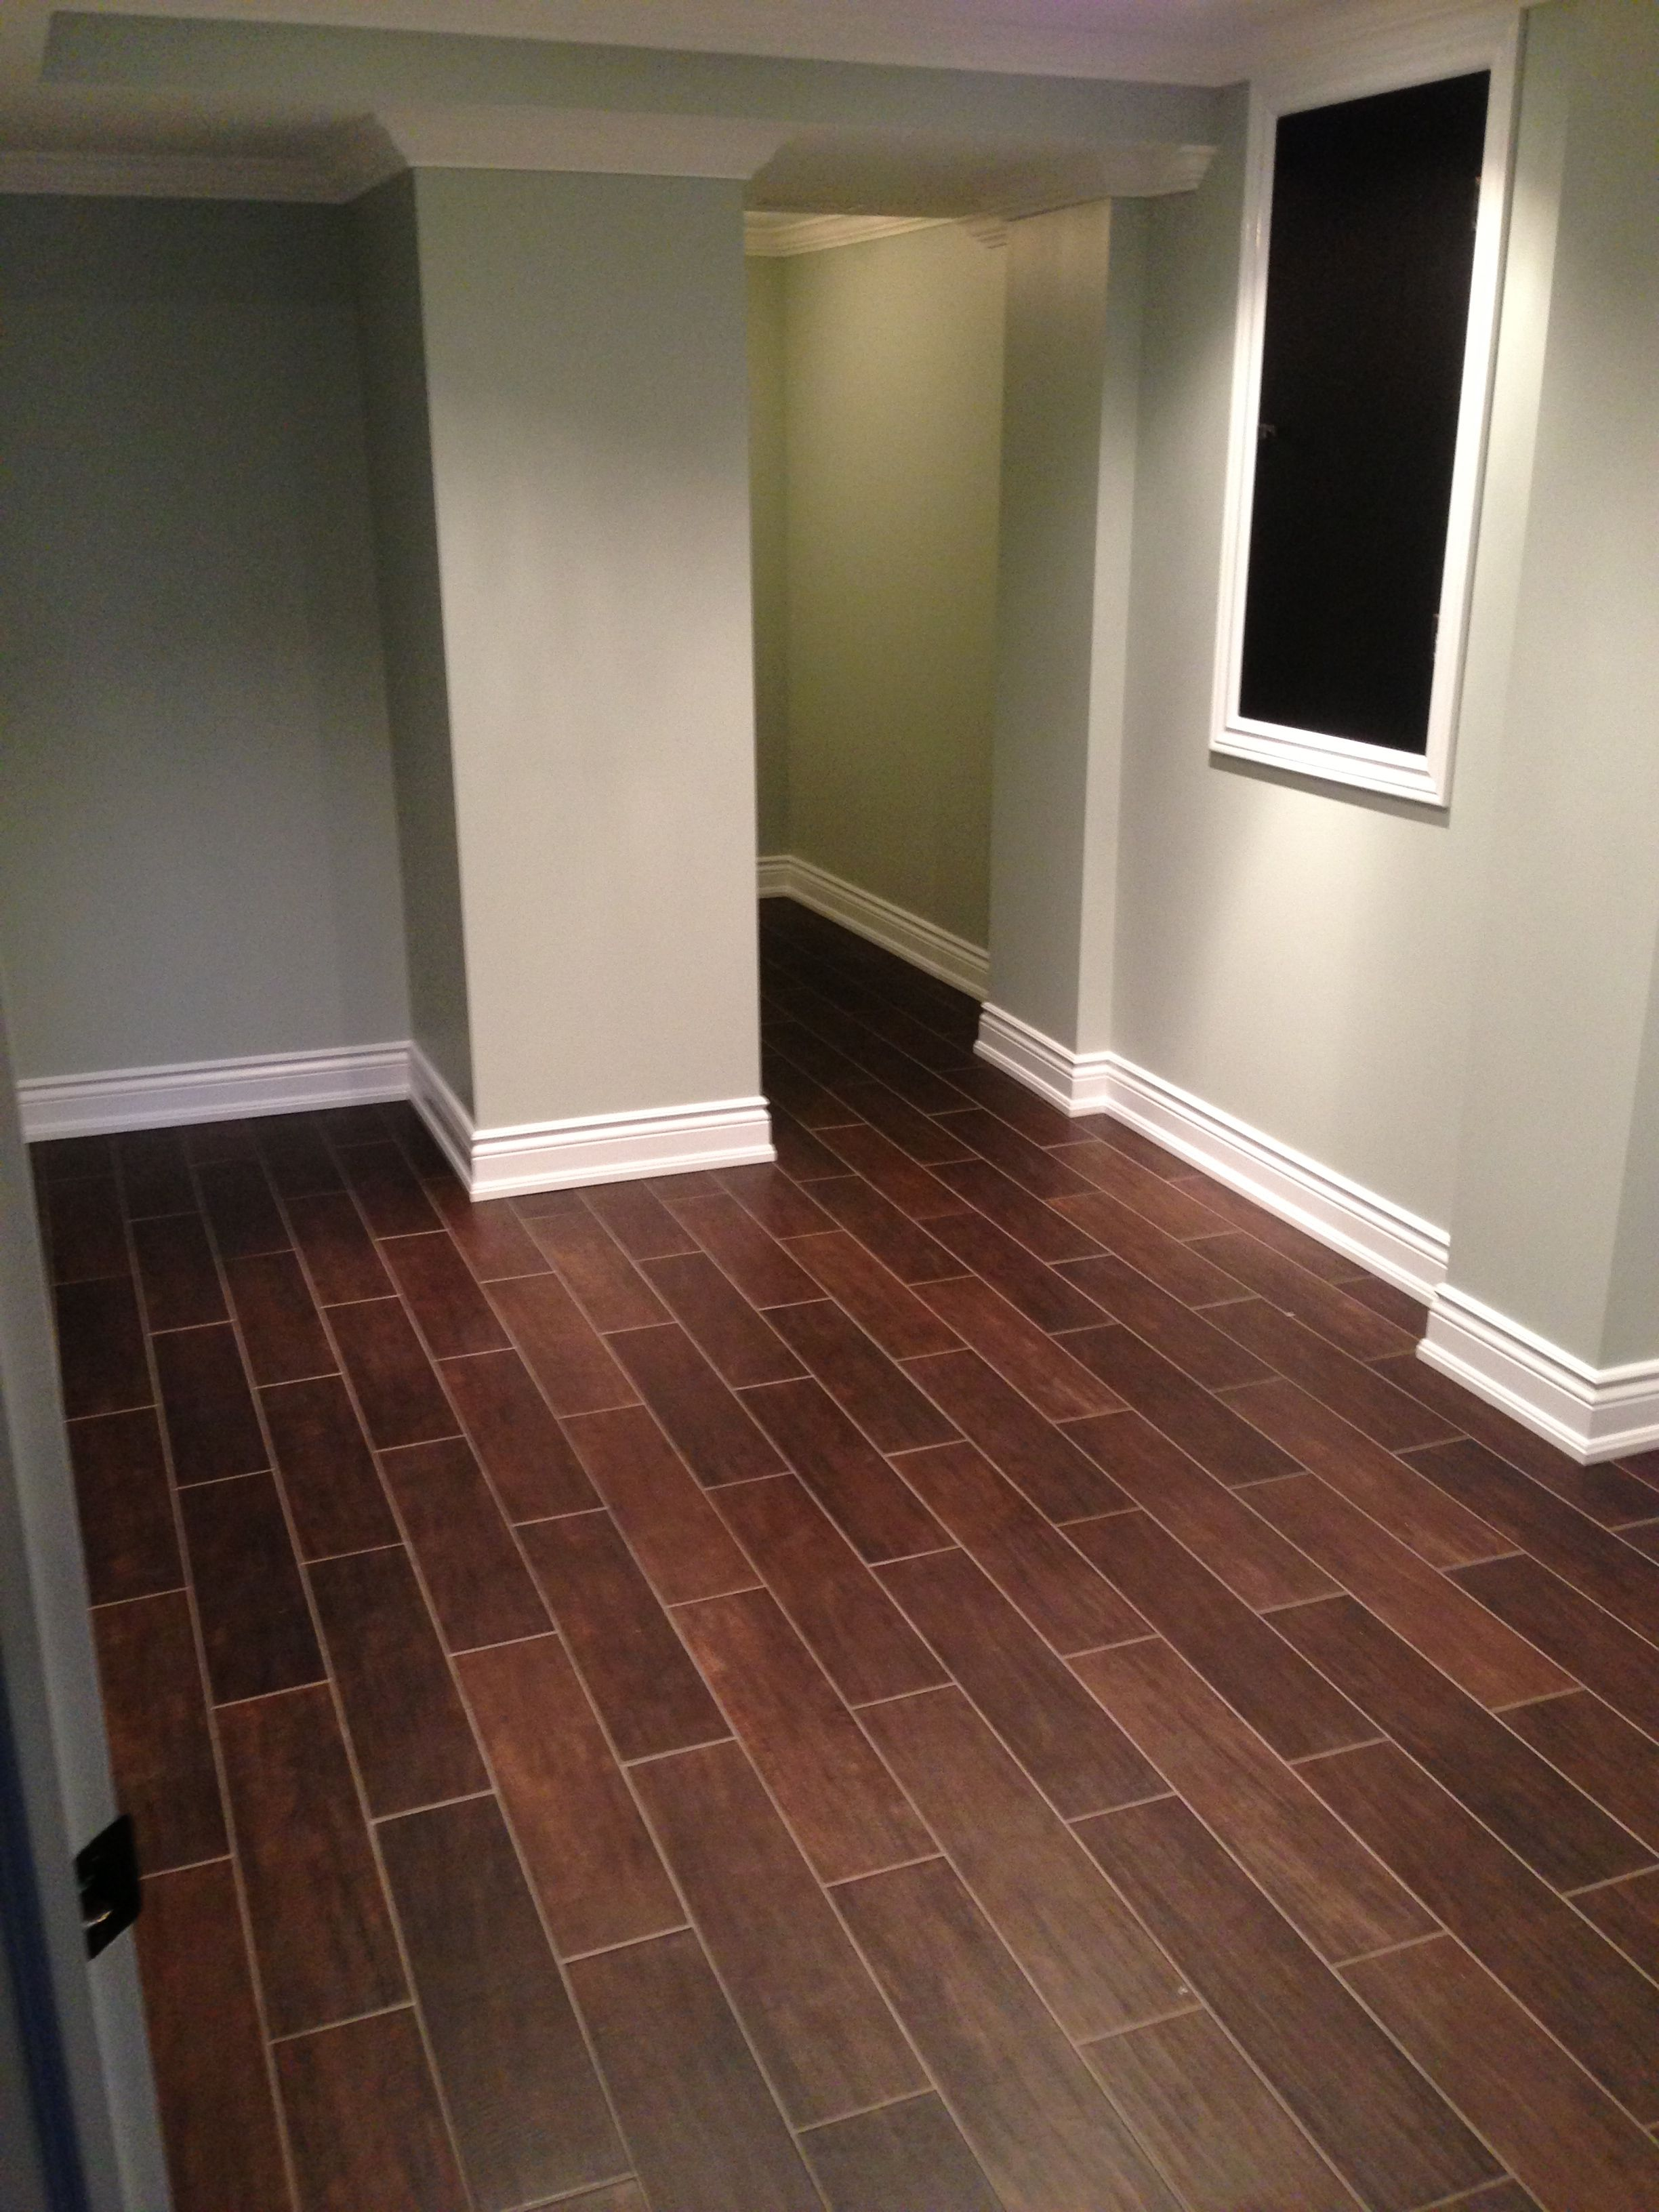 Hardwood Floor Alternative Hardwood Styled Tile Dark Hardwood Tile Basement Flooring Simple Bedroom Design Dark Hardwood